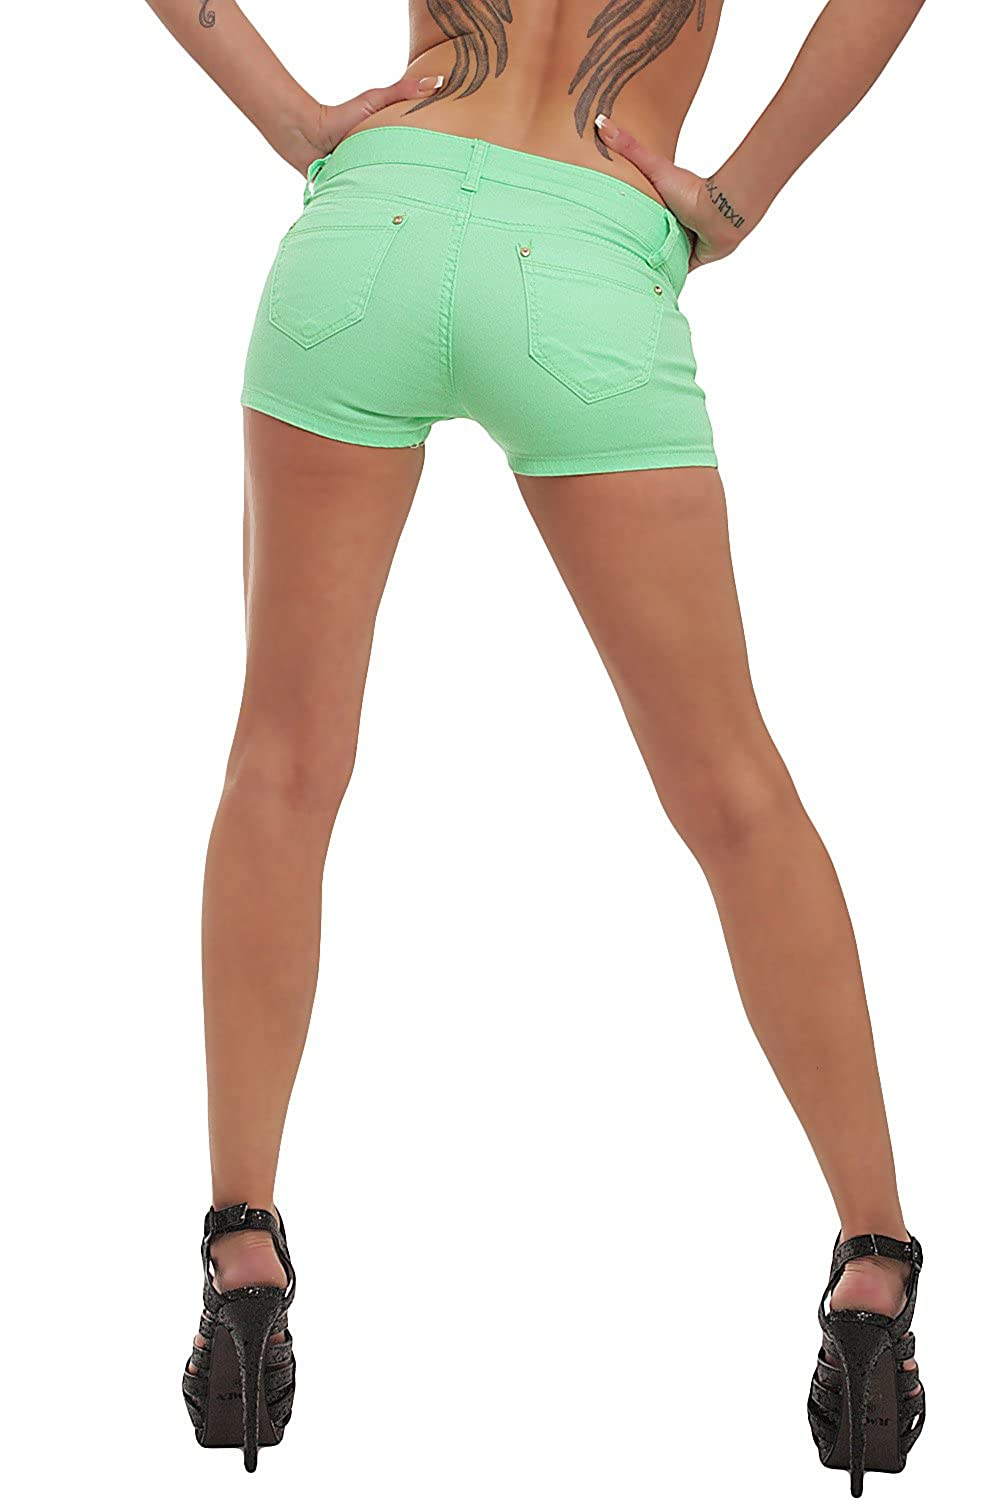 10021 Fashion4Young Damen Sexy Stretch-Denim Hotpants Short kurze Hose verfügbar in 5 Gr. 6 Farben (XL = 42, Neongrün)